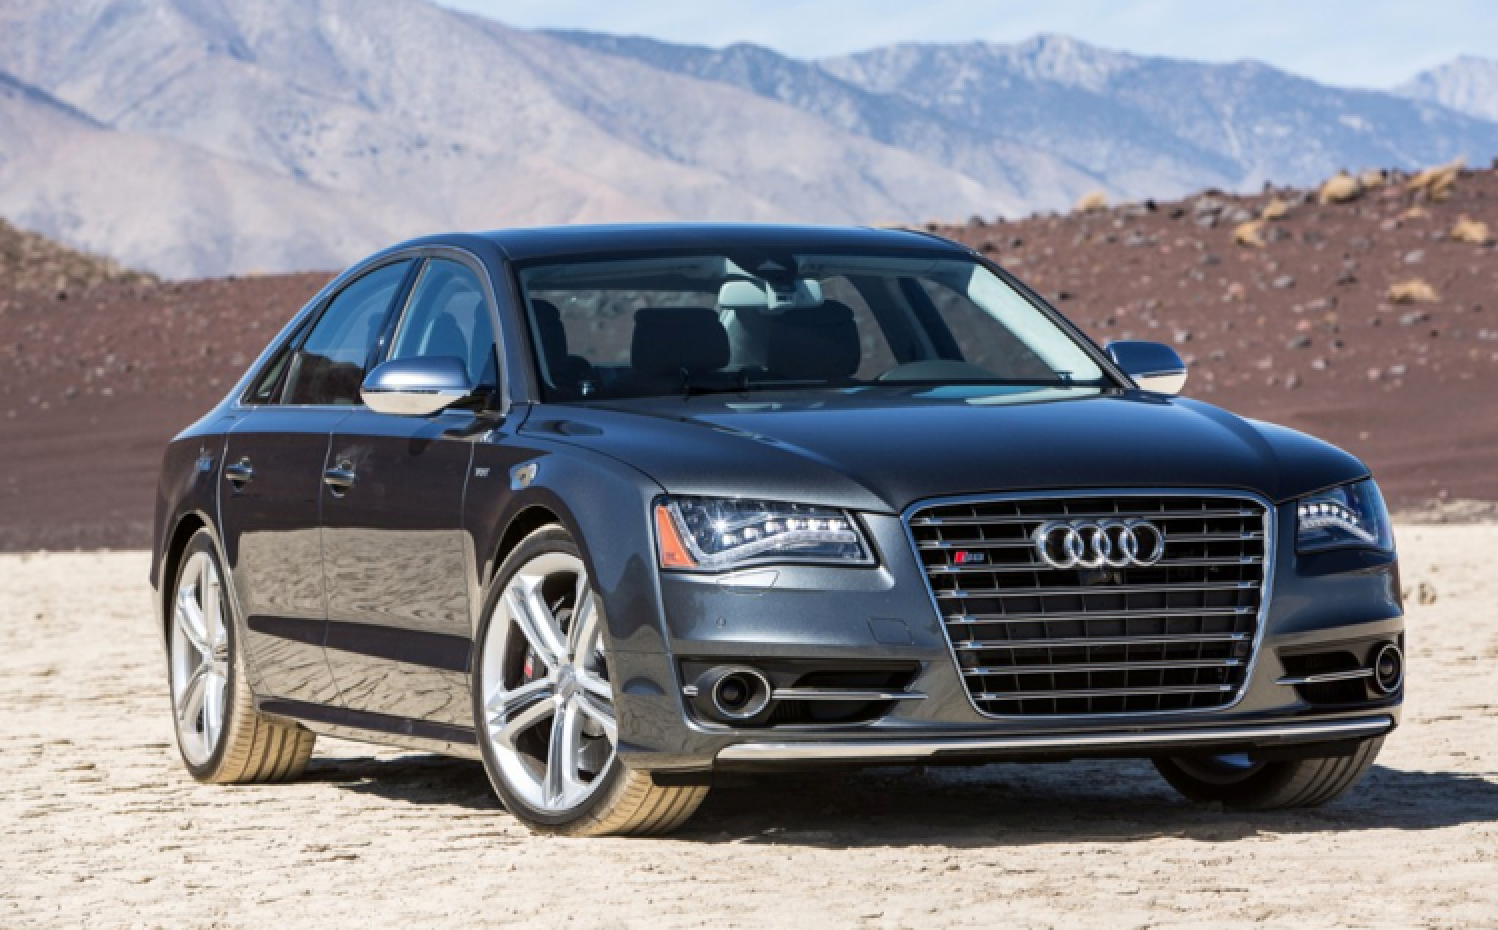 Top 10 Quickest 0 60 Mph Cars Motor Trend Tested In 2012 Audi Dream Cars Audi Cars